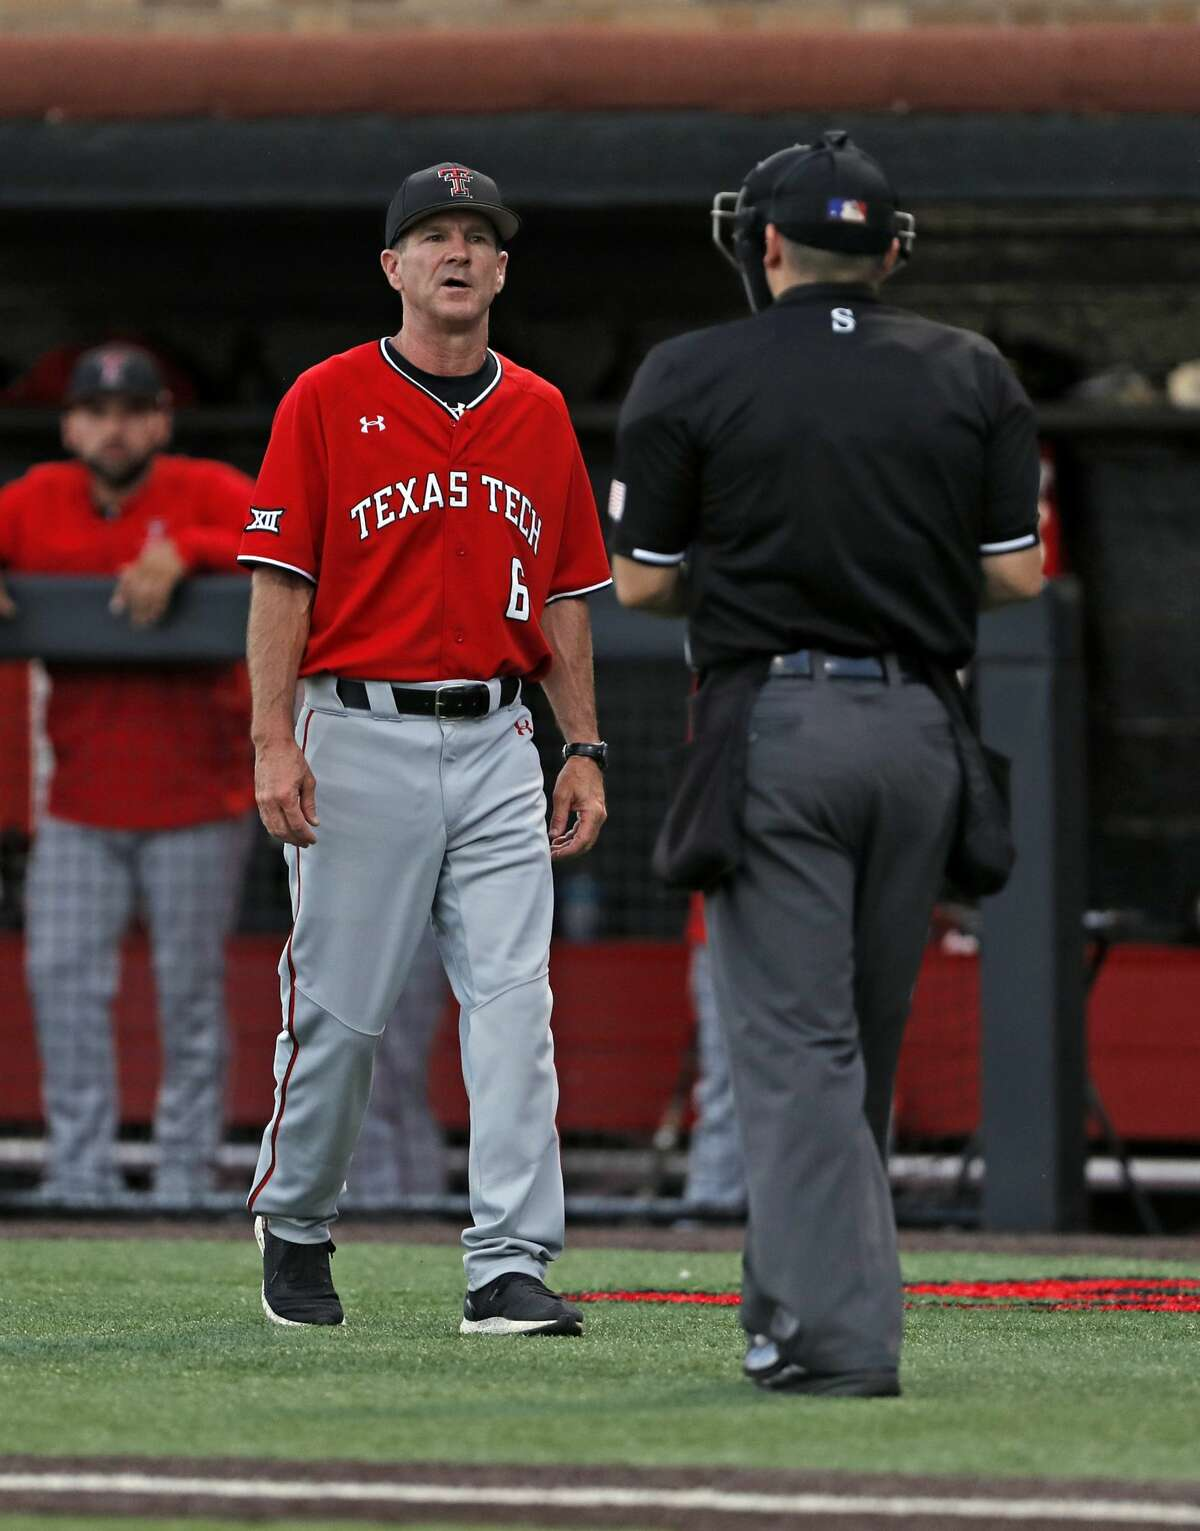 Texas Tech coach Tim Tadlock talks to umpire Ryan Morehead during the ninth inning in Game 2 of the team's NCAA college baseball tournament super regional against Oklahoma State, Saturday, June 8, 2019, in Lubbock, Texas. (AP Photo/Brad Tollefson)